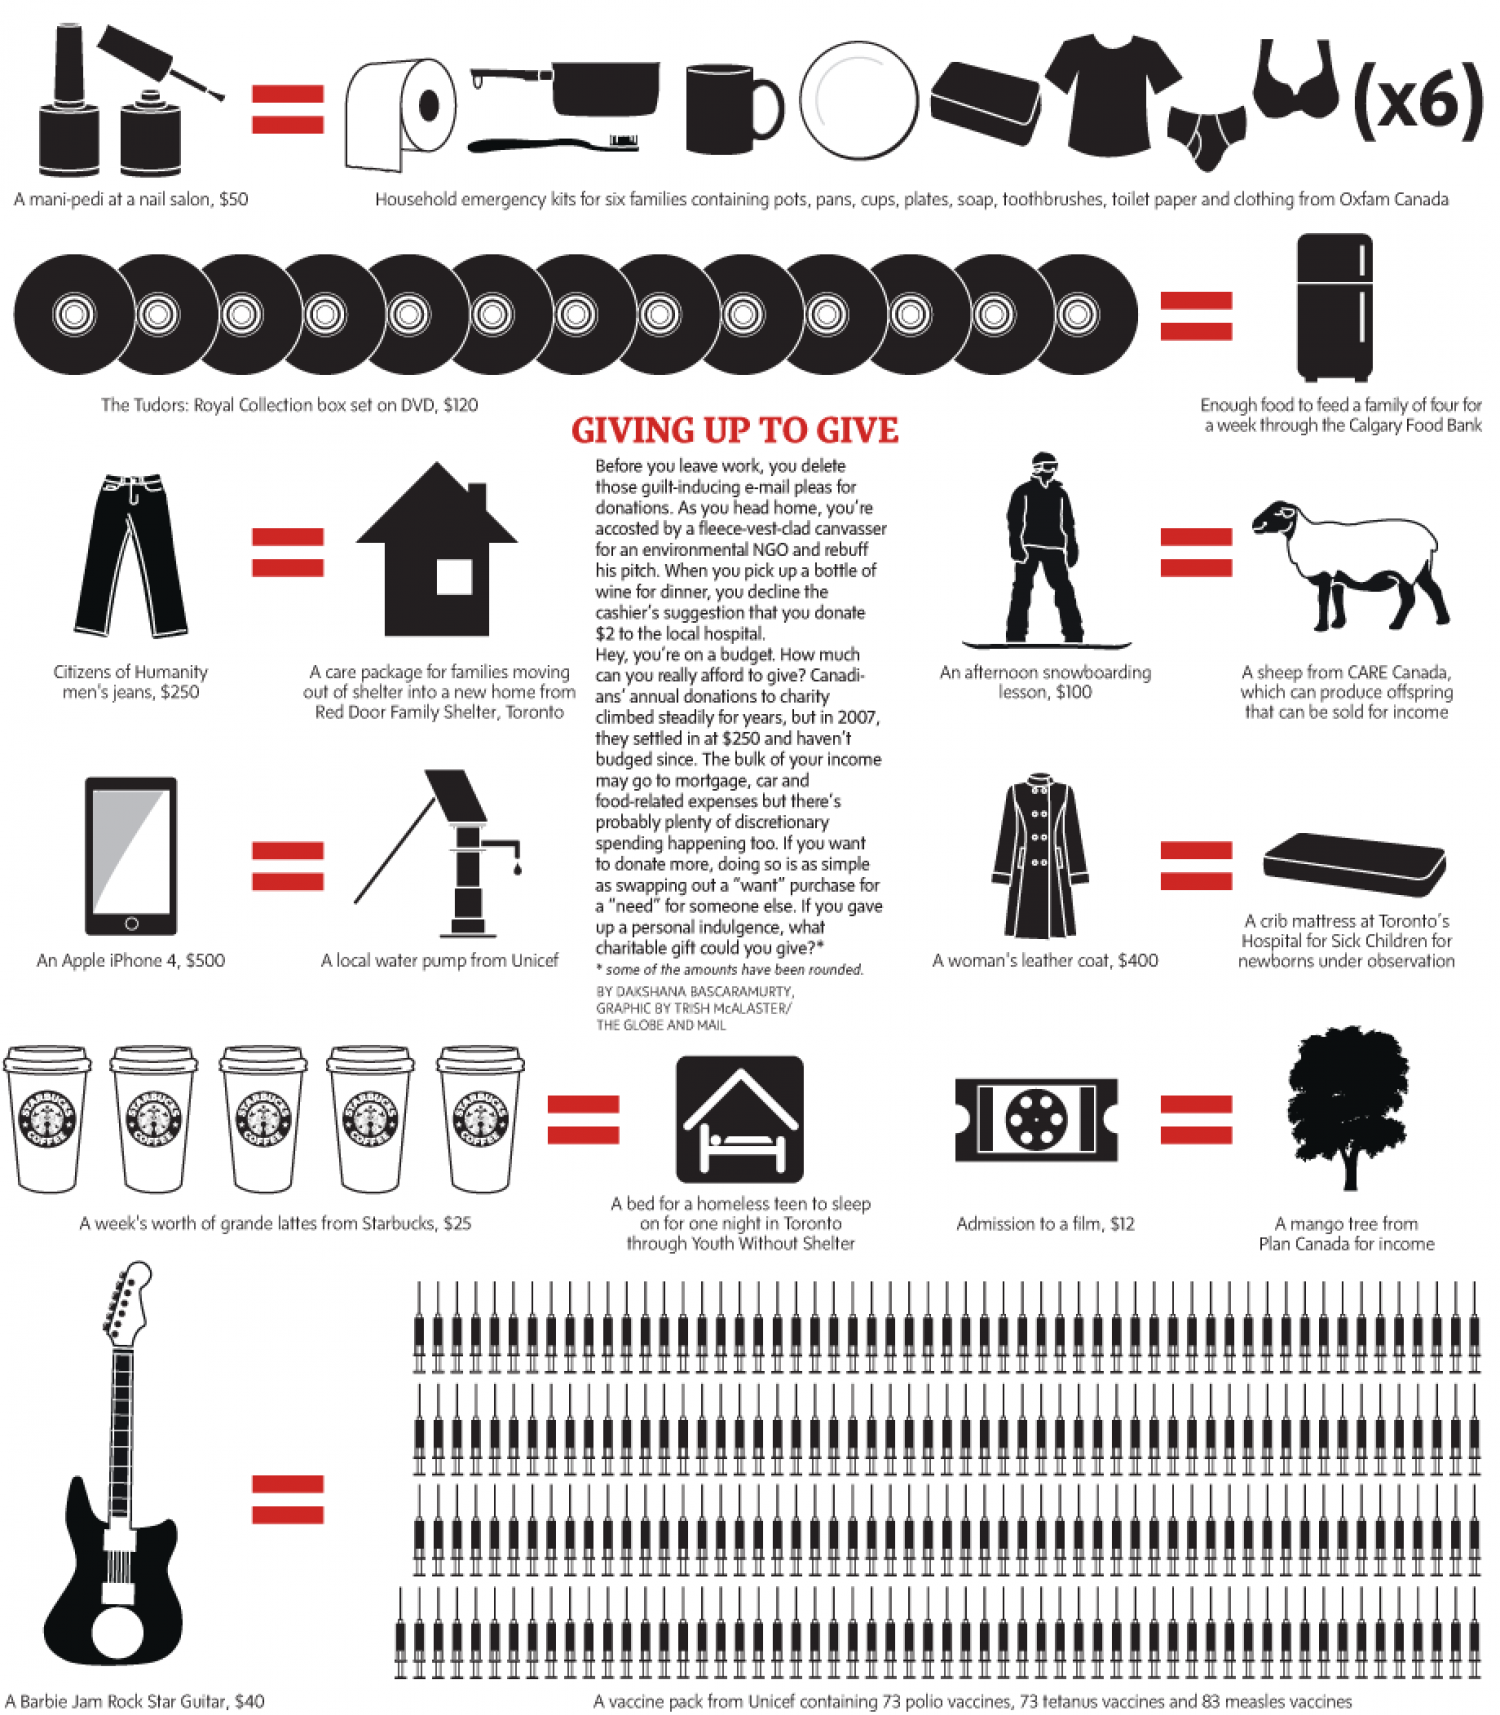 What could a charity do with your mani-pedi? Infographic